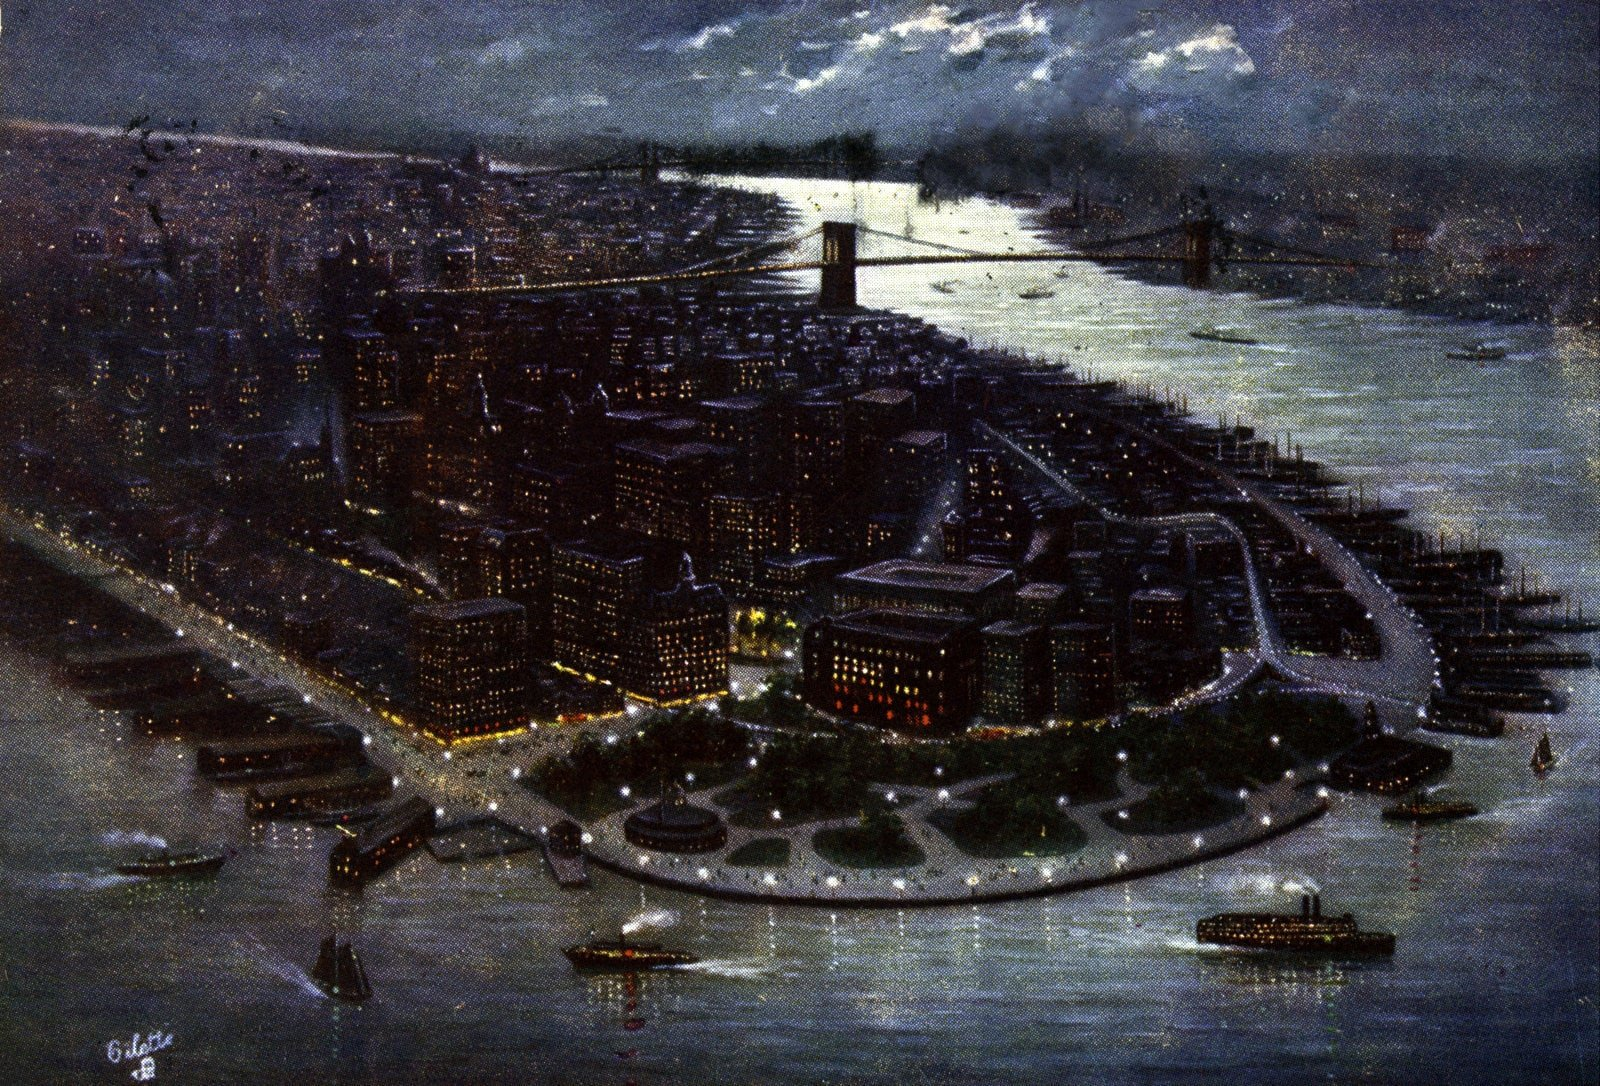 1906 NYC at night - Bird's-eye view of the southern part of the city